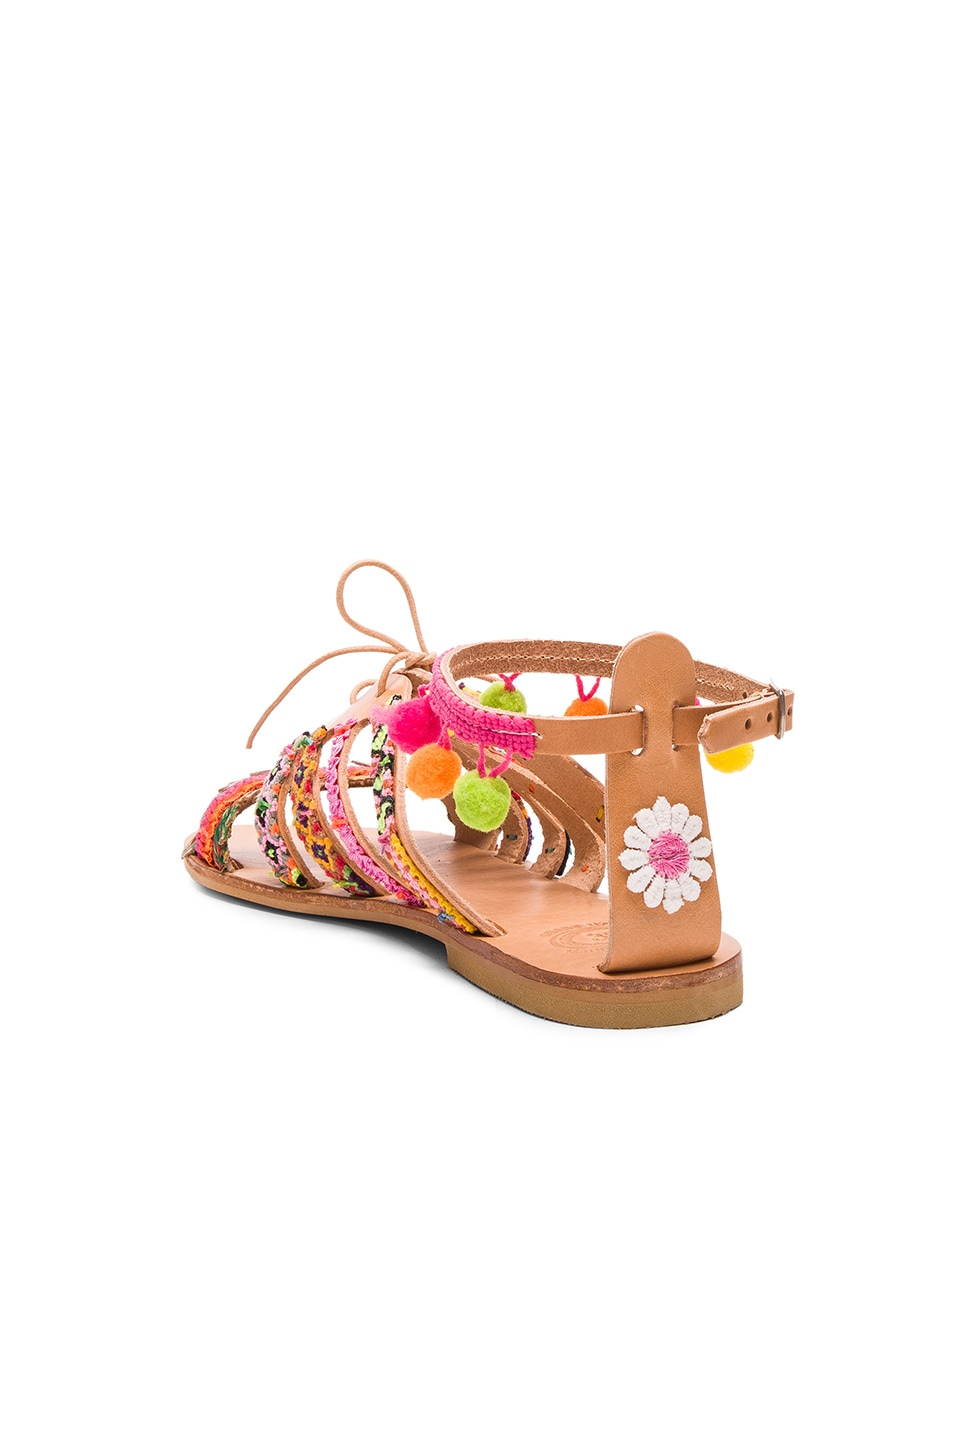 Image 4 of Elina Linardaki Leather Hula Hoop Sandals in Multi